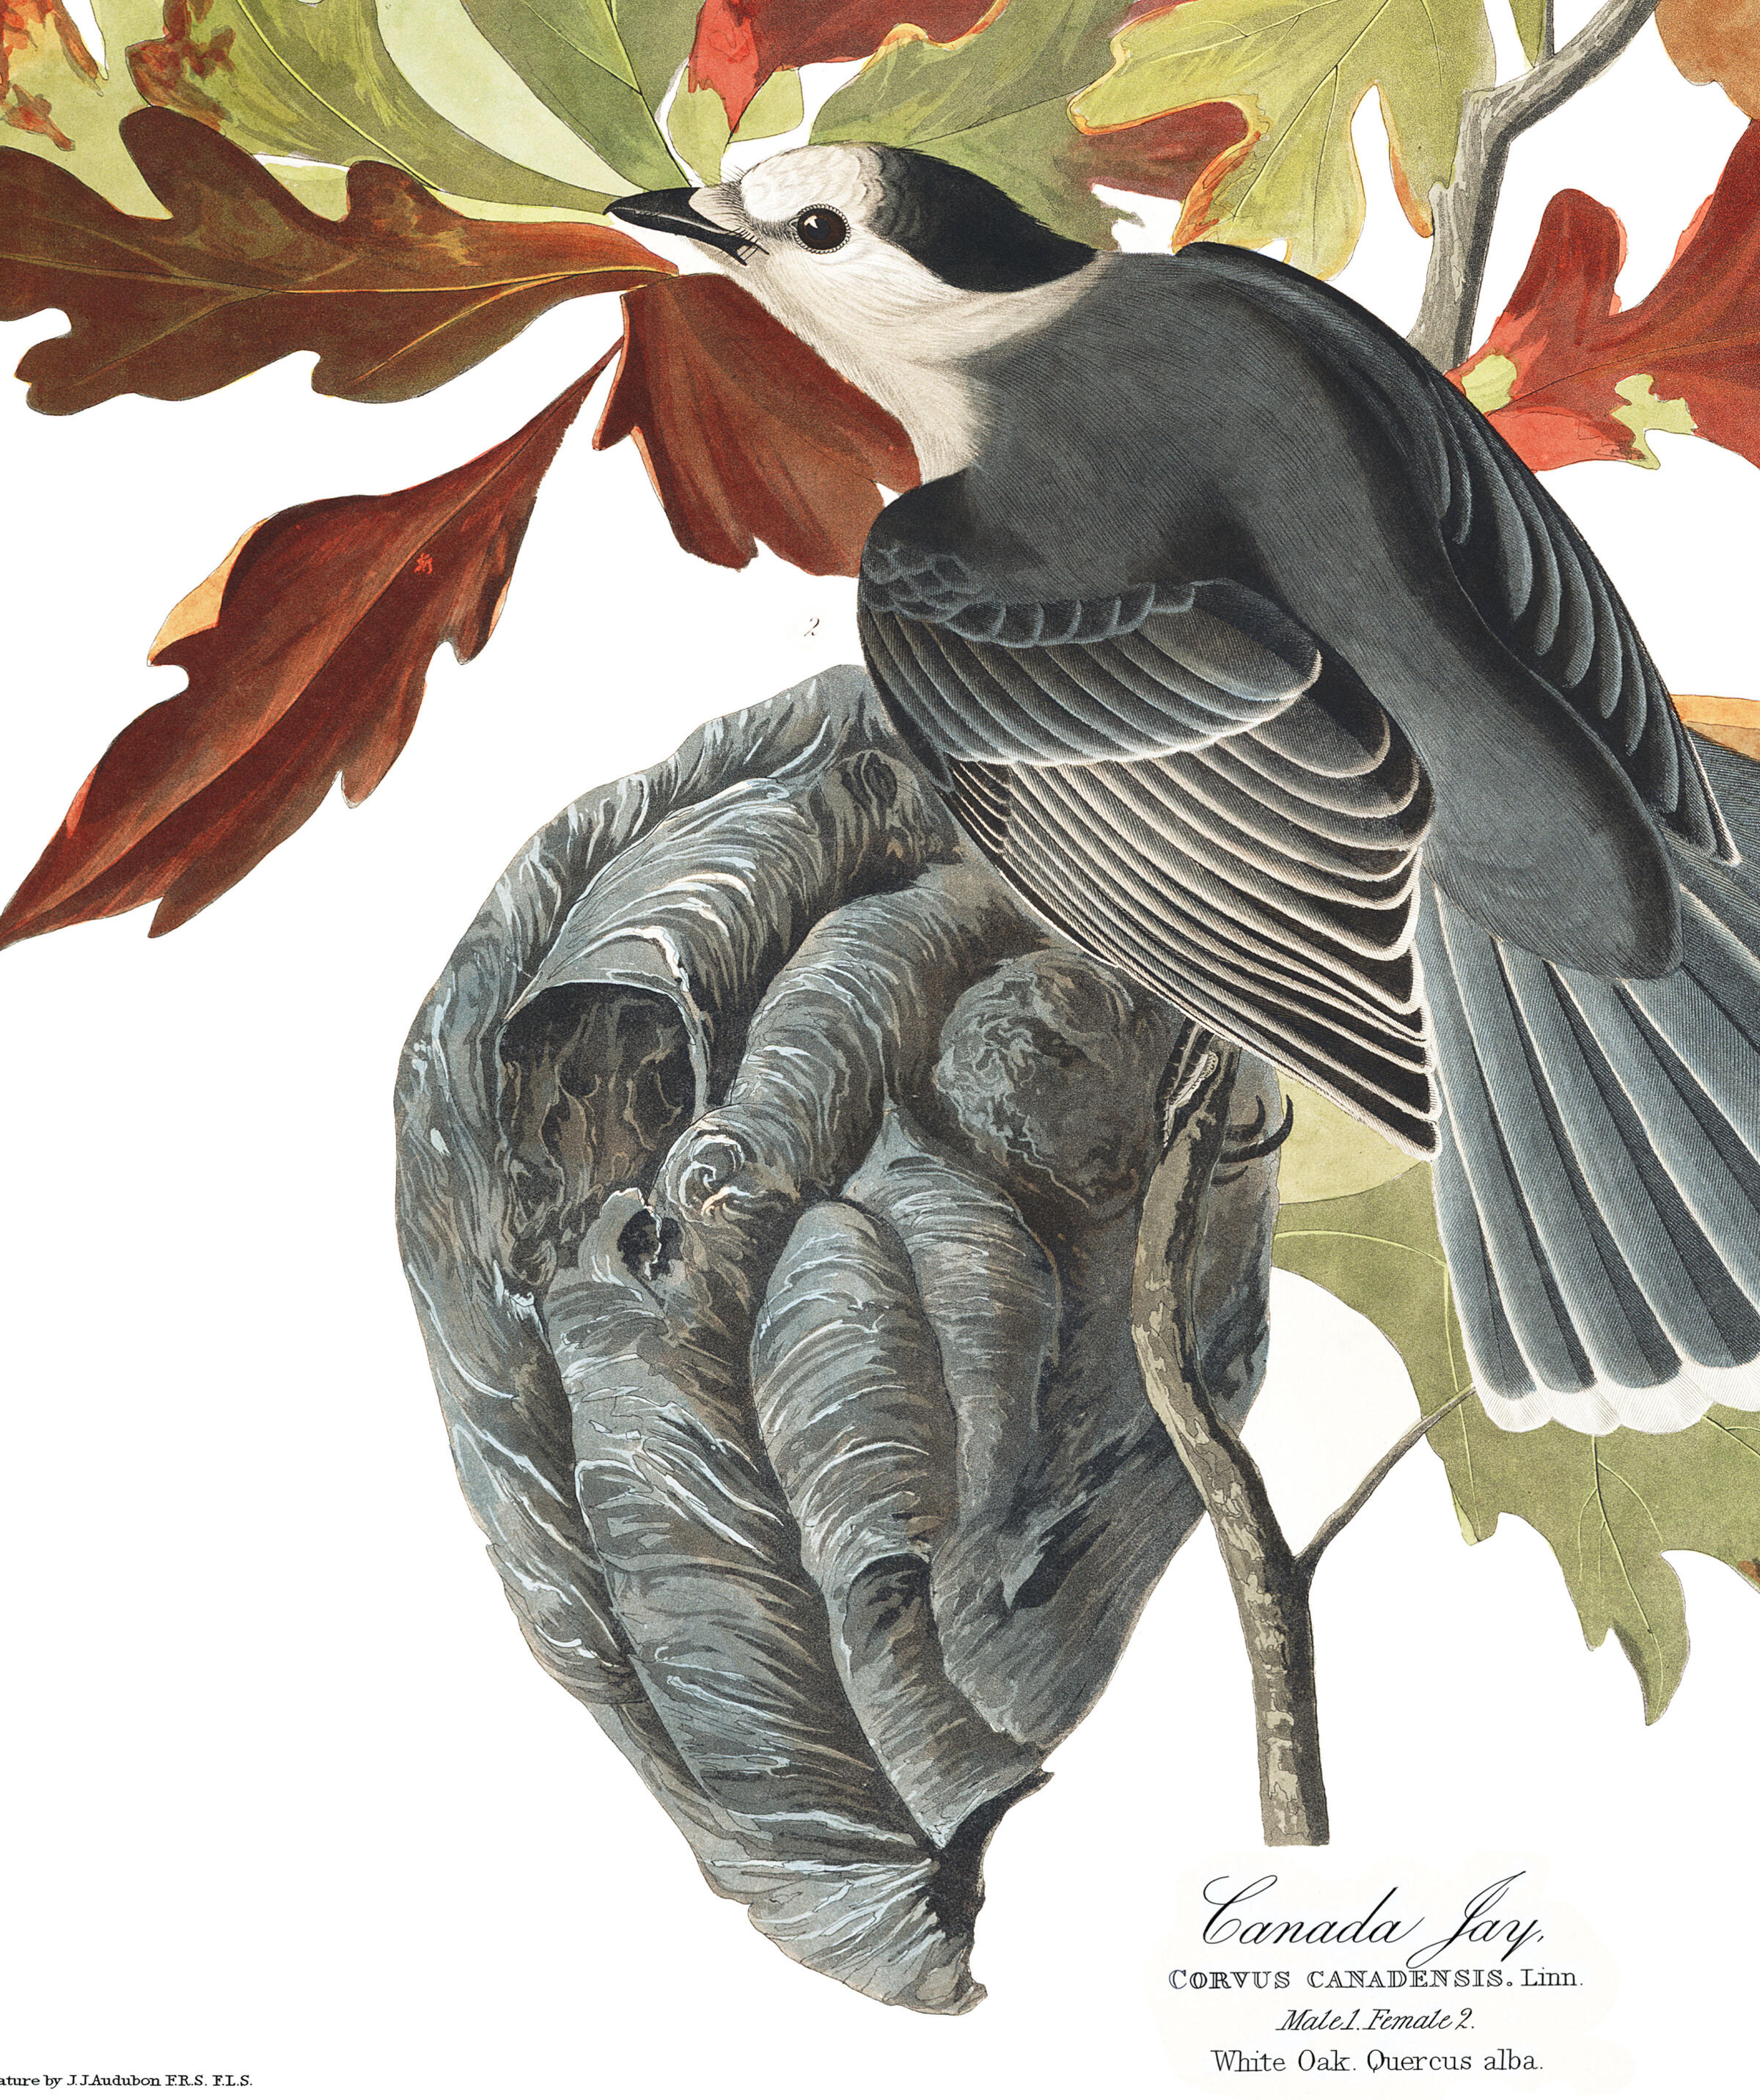 Canada Jay | John James Audubon's Birds of America